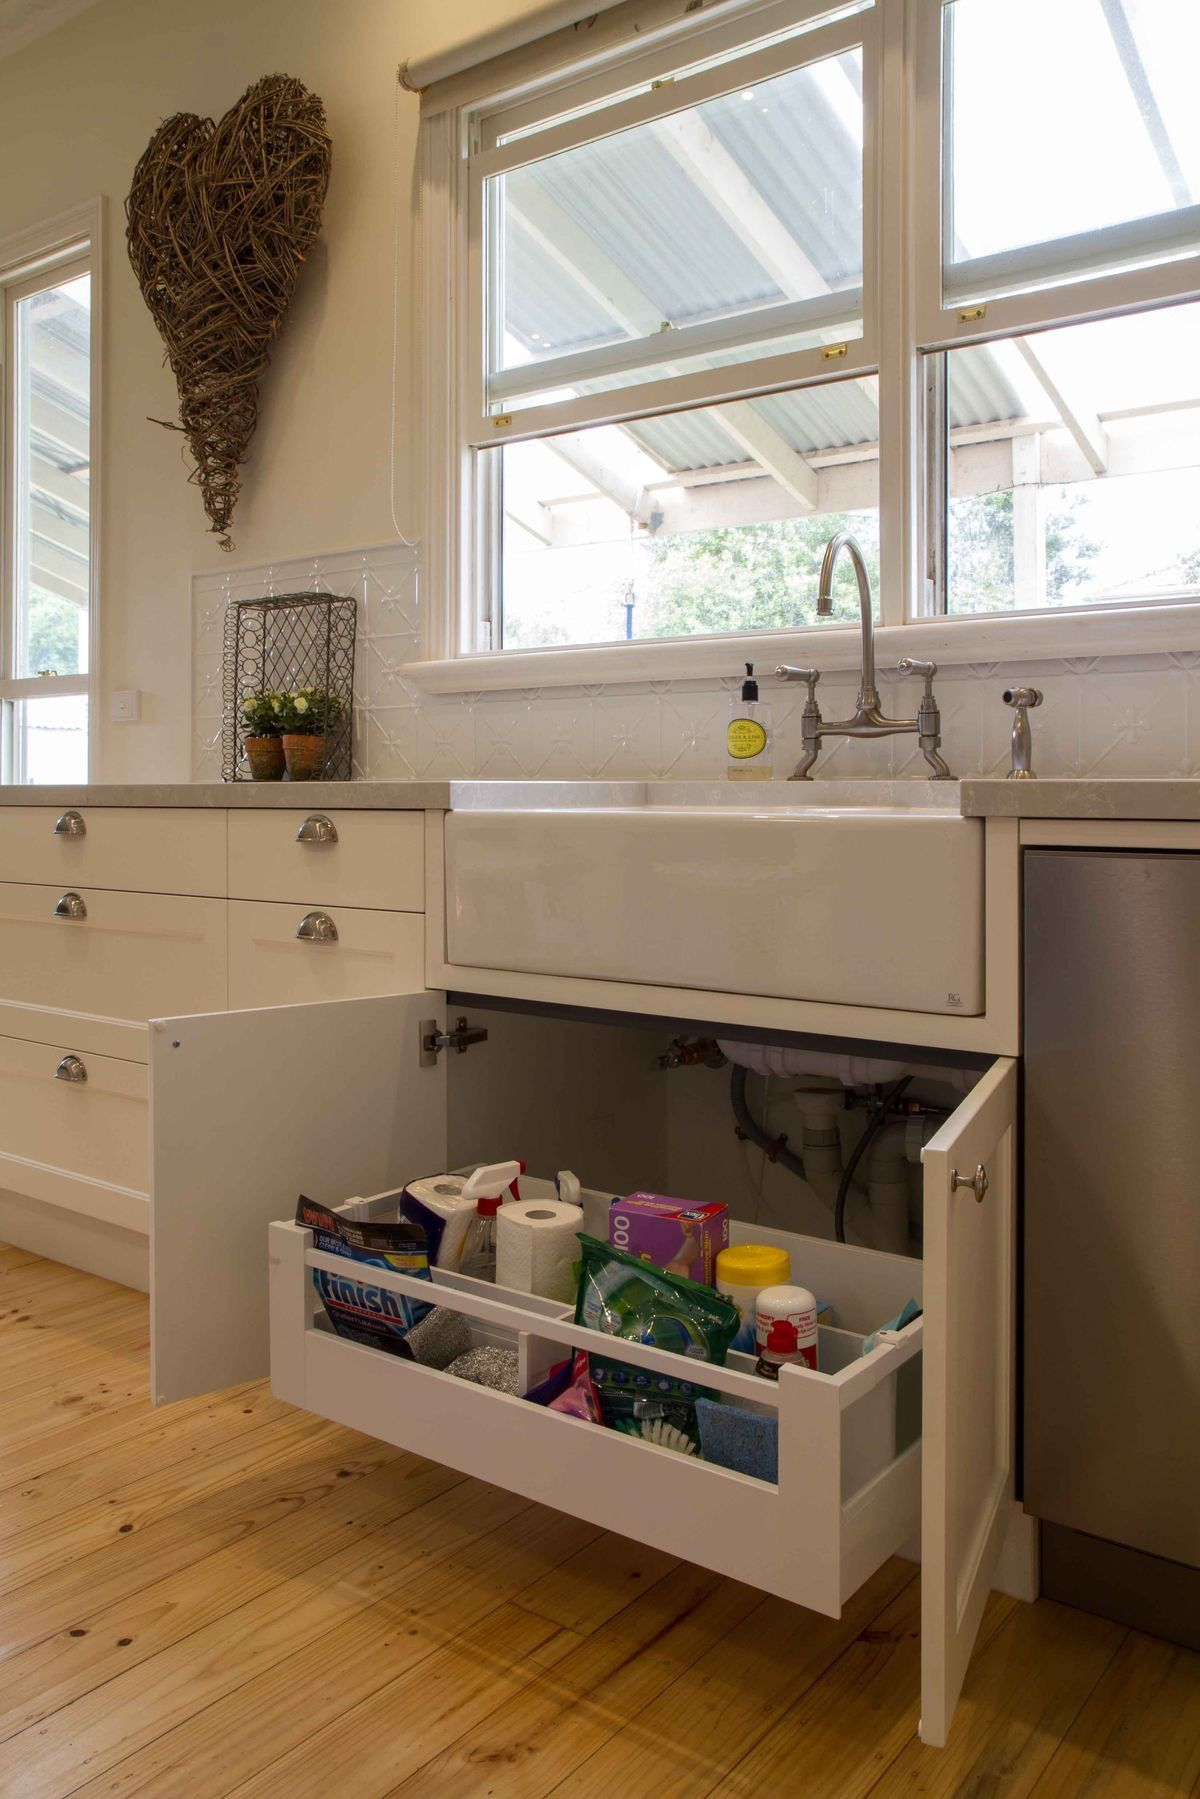 Pin by Dixie Funderburk on Small Kitchens   Kitchen cabinets decor ...